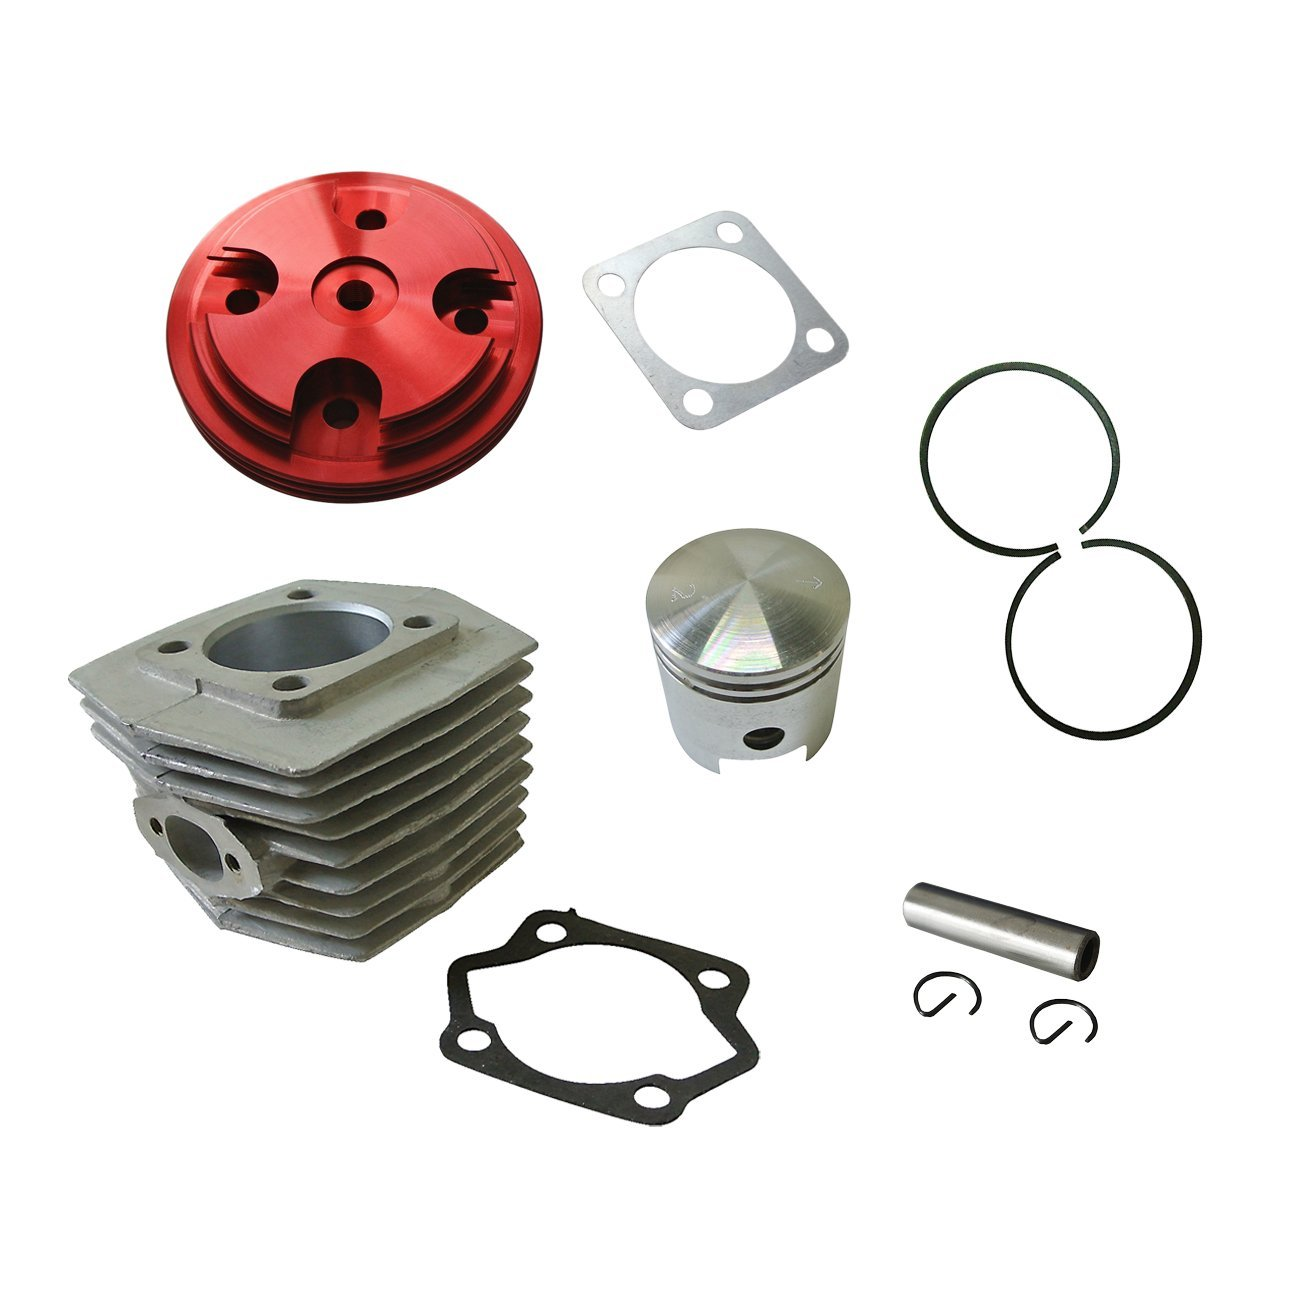 JRL CNC Red Cylinder Head Cover&Cylinder&Piston For 80cc Motorized Bike